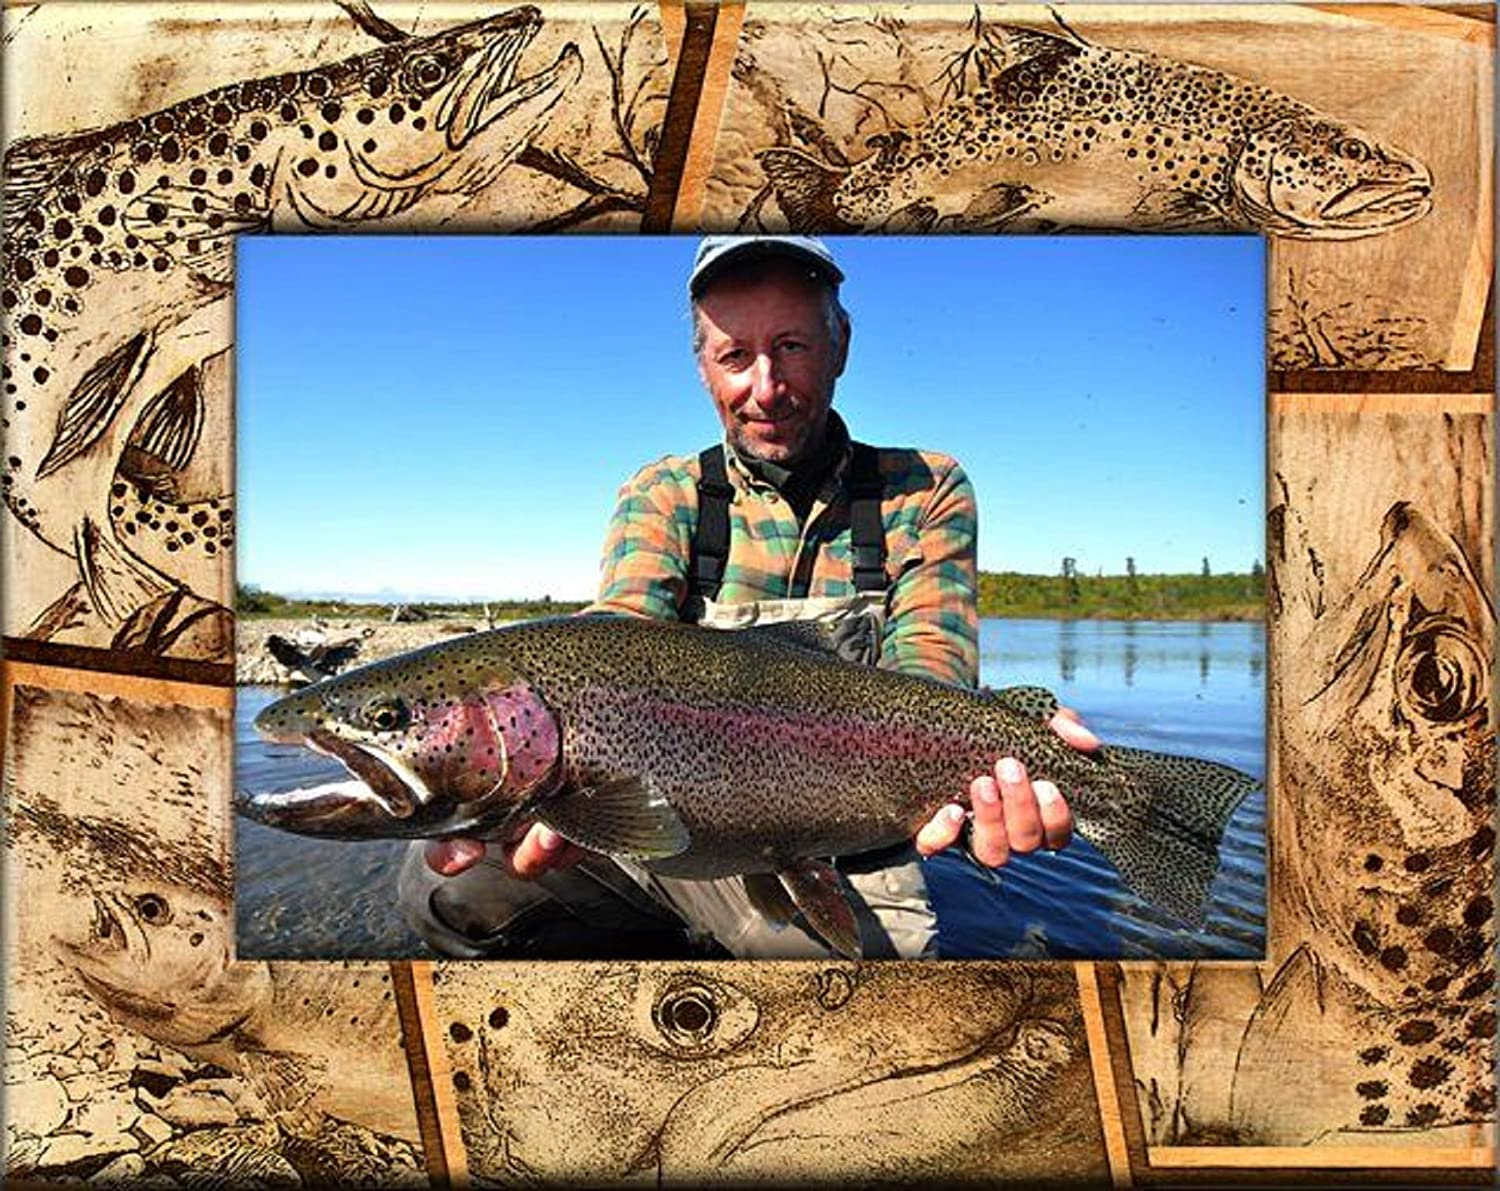 Trout Fishing Laser Engraved Wood Selling SALENEW very popular! and selling 5 x 7 Frame Picture